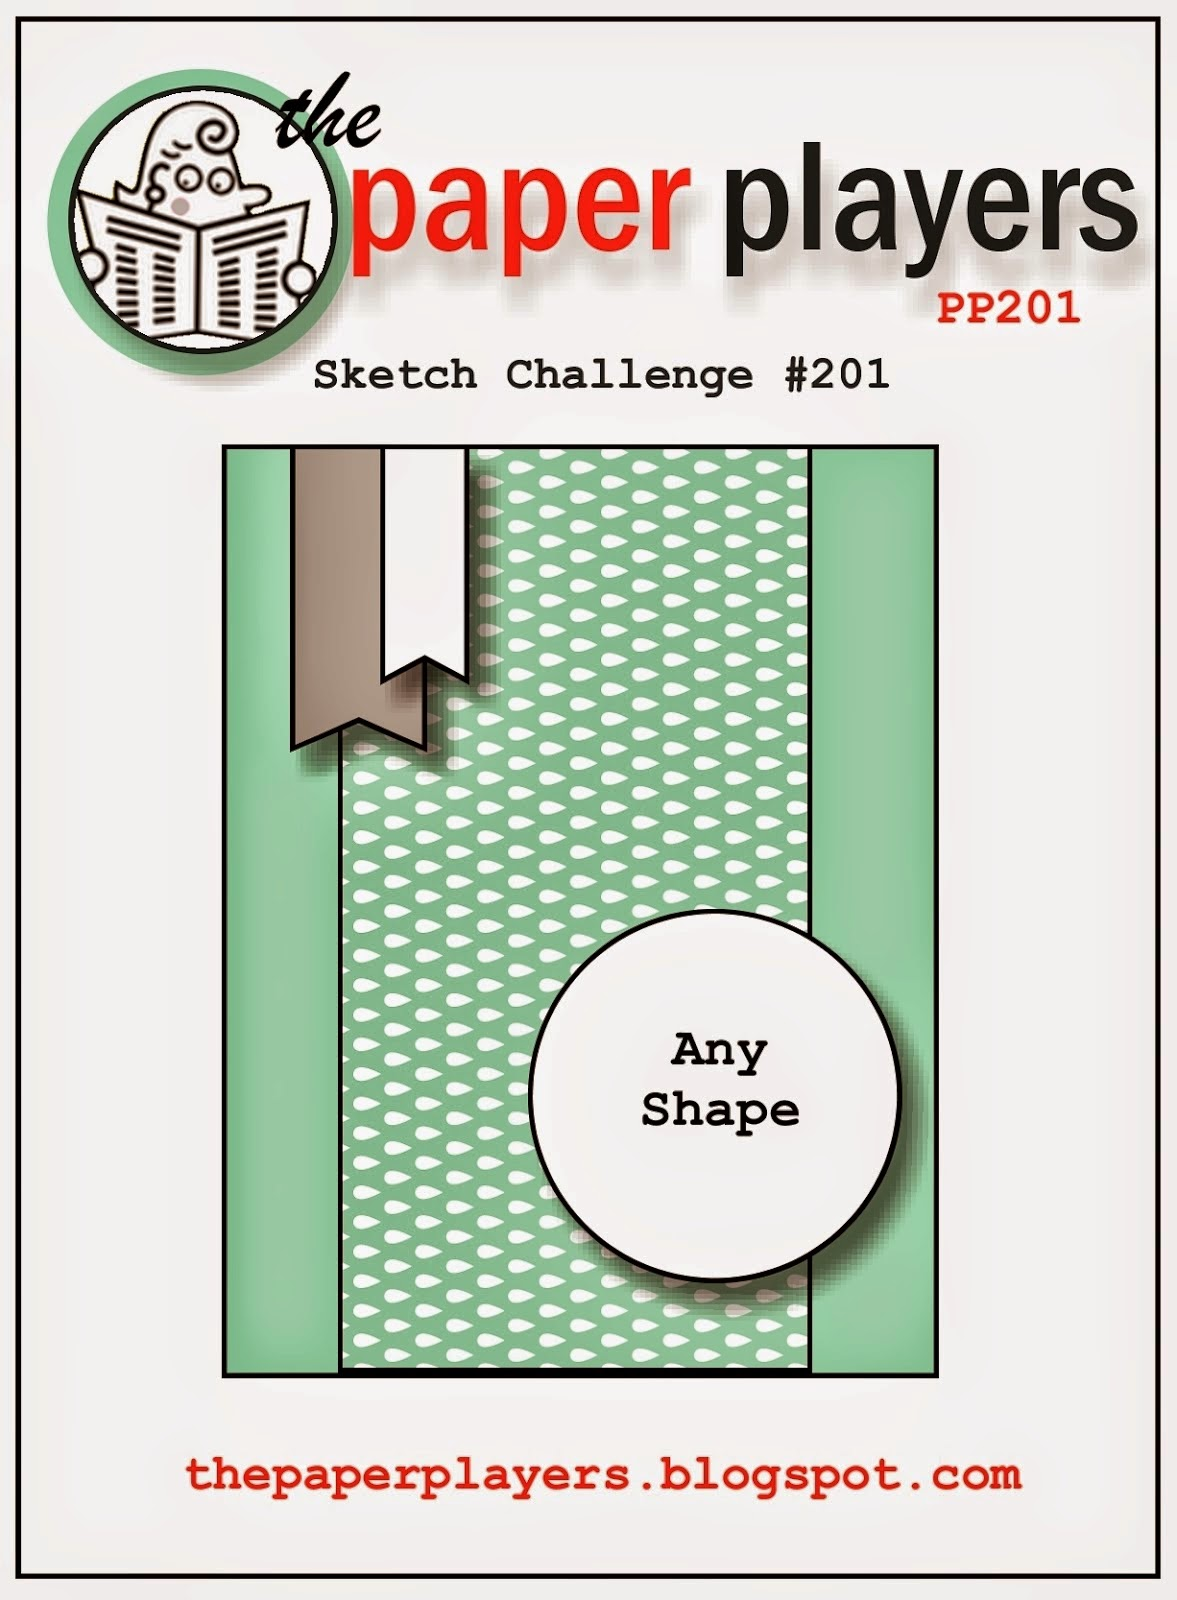 http://www.thepaperplayers.blogspot.com.au/2014/06/paper-players-challenge-201-sketch-from.html